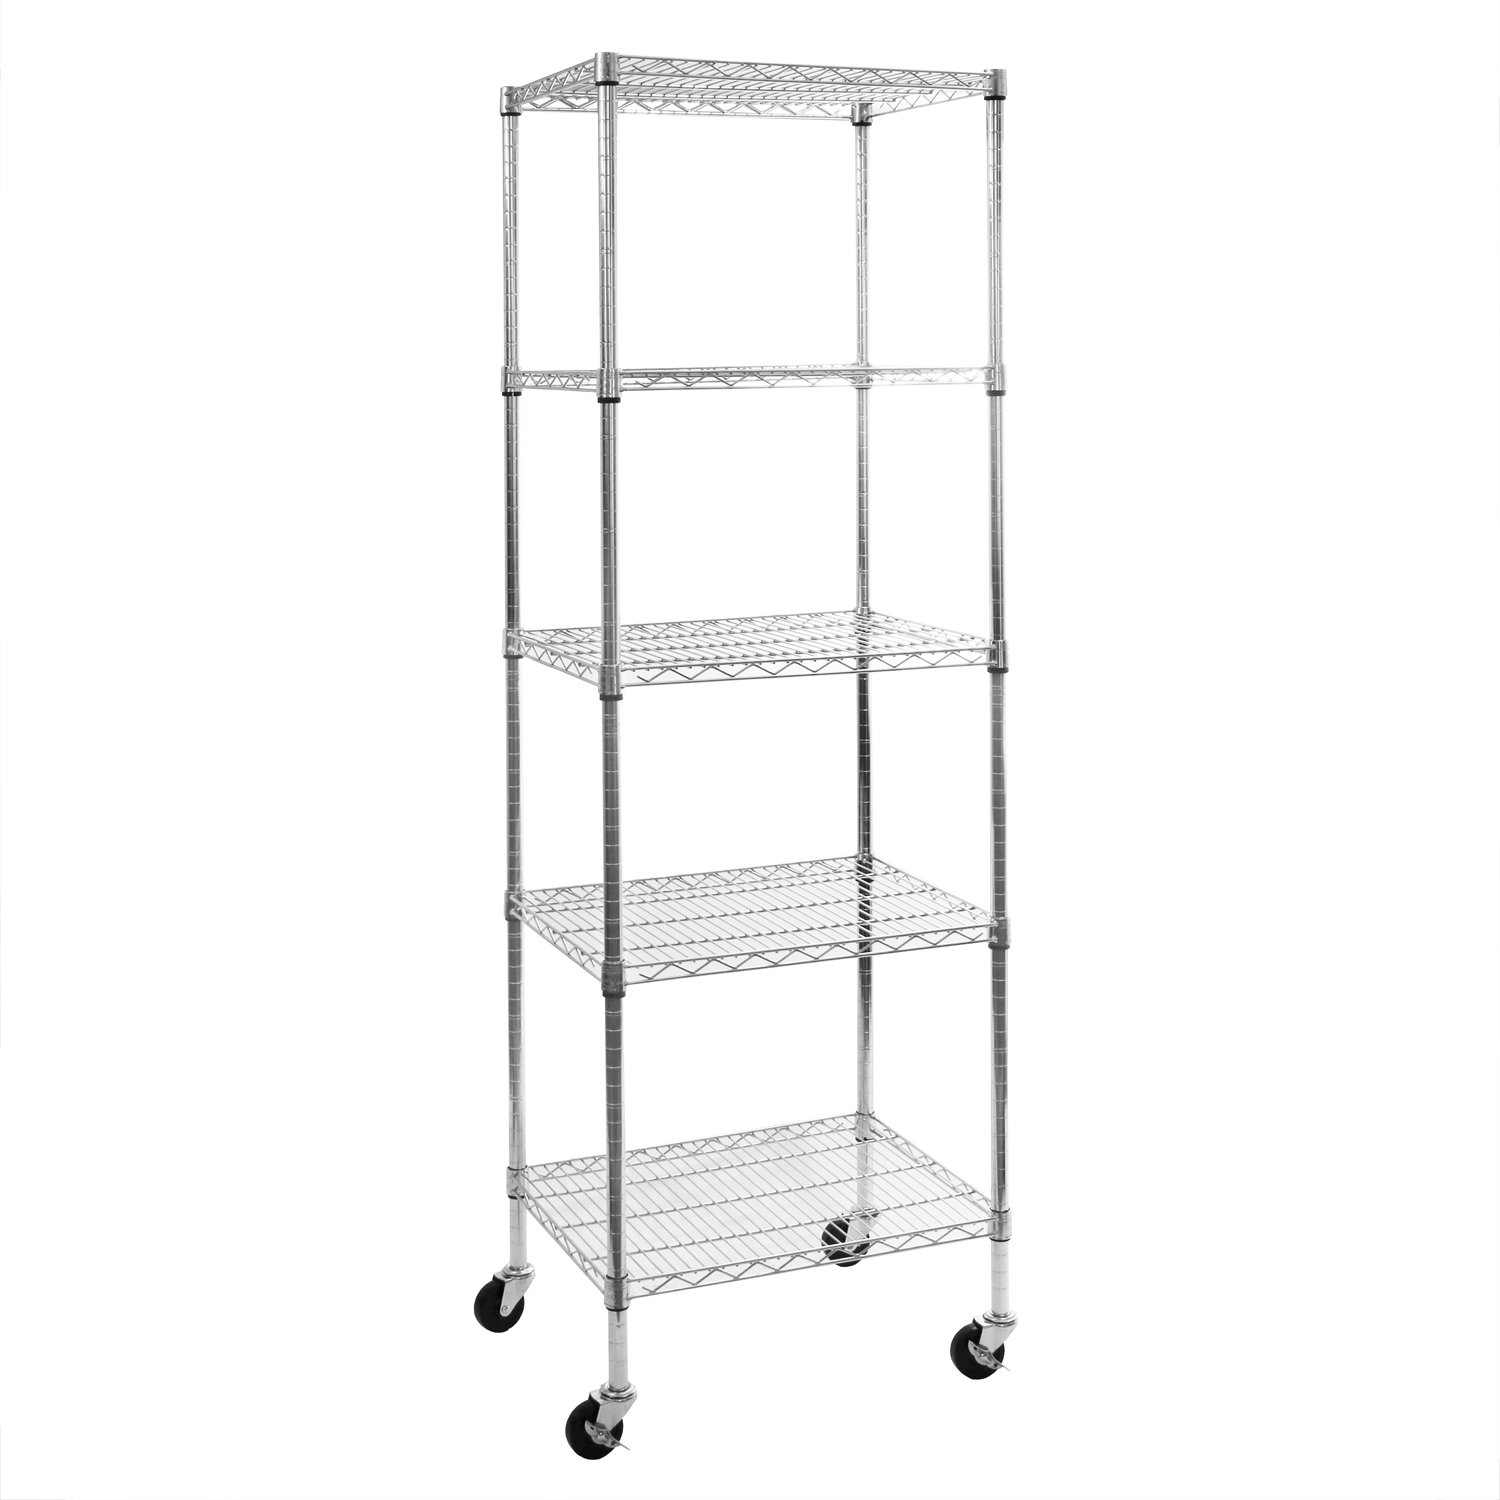 Seville Classics UltraDurable Commercial-Grade 5-Tier Steel Wire Shelving with Wheels, 24